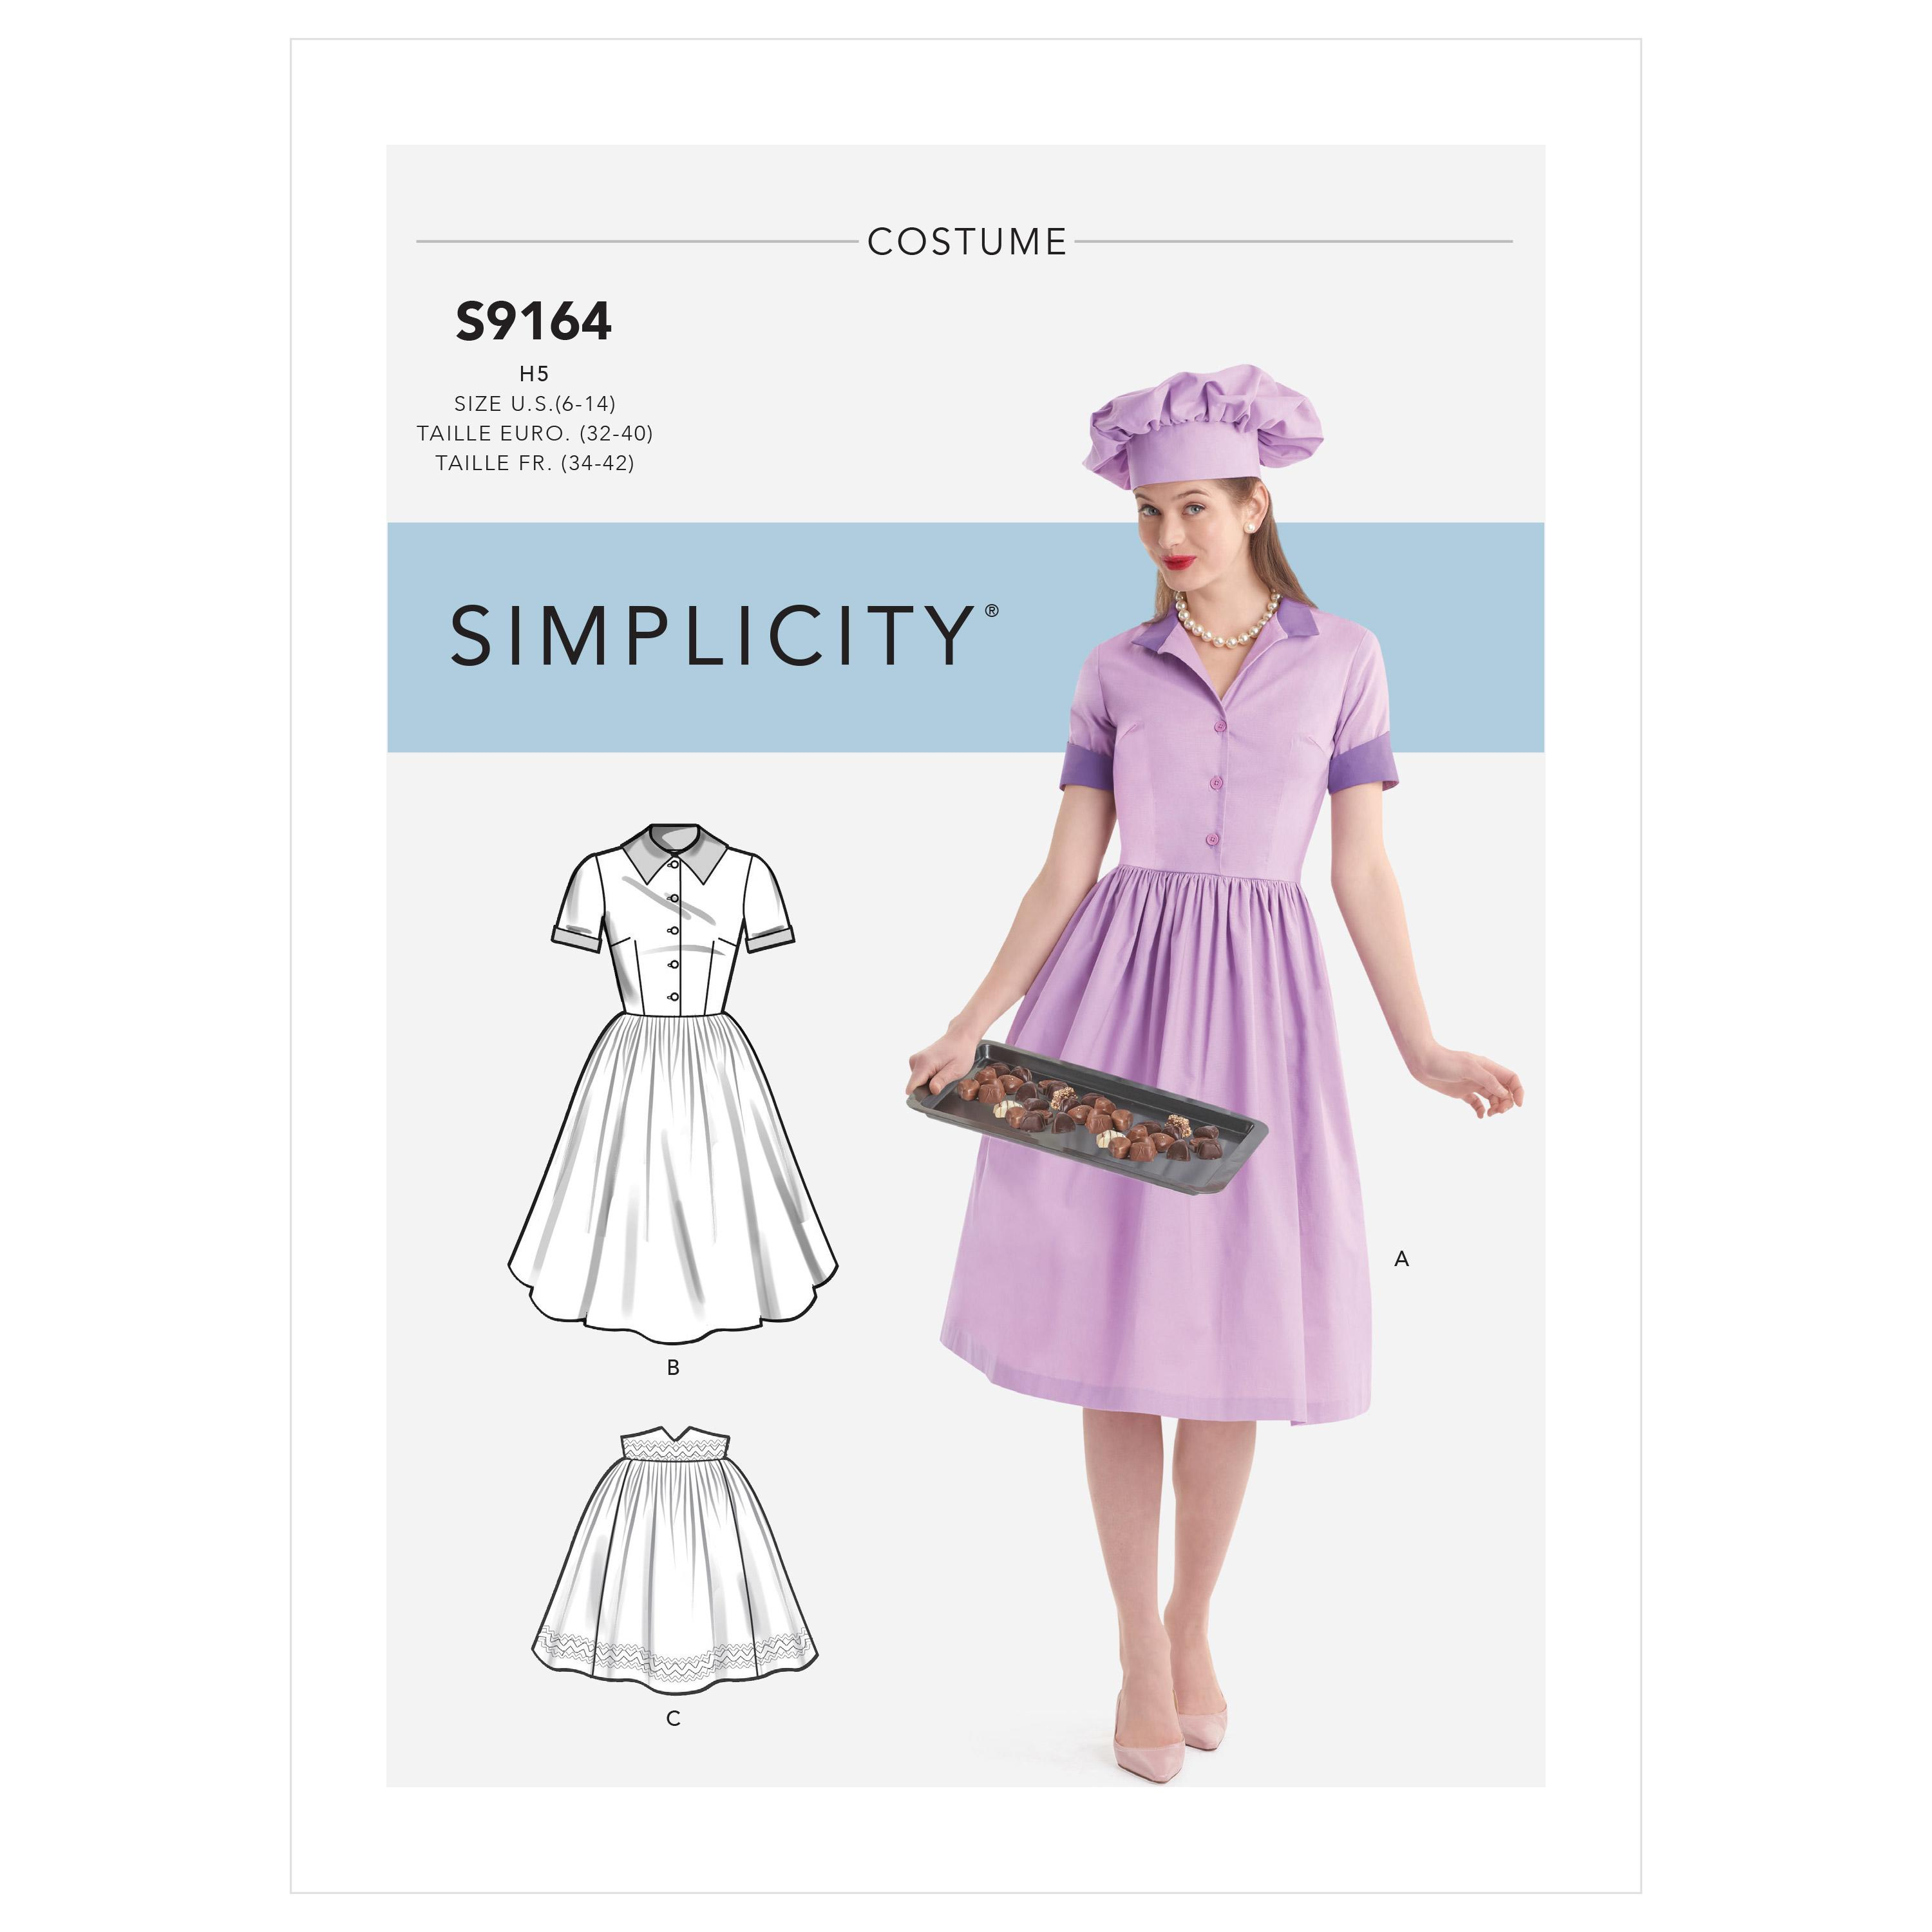 Simplicity S9164 Misses' Costumes